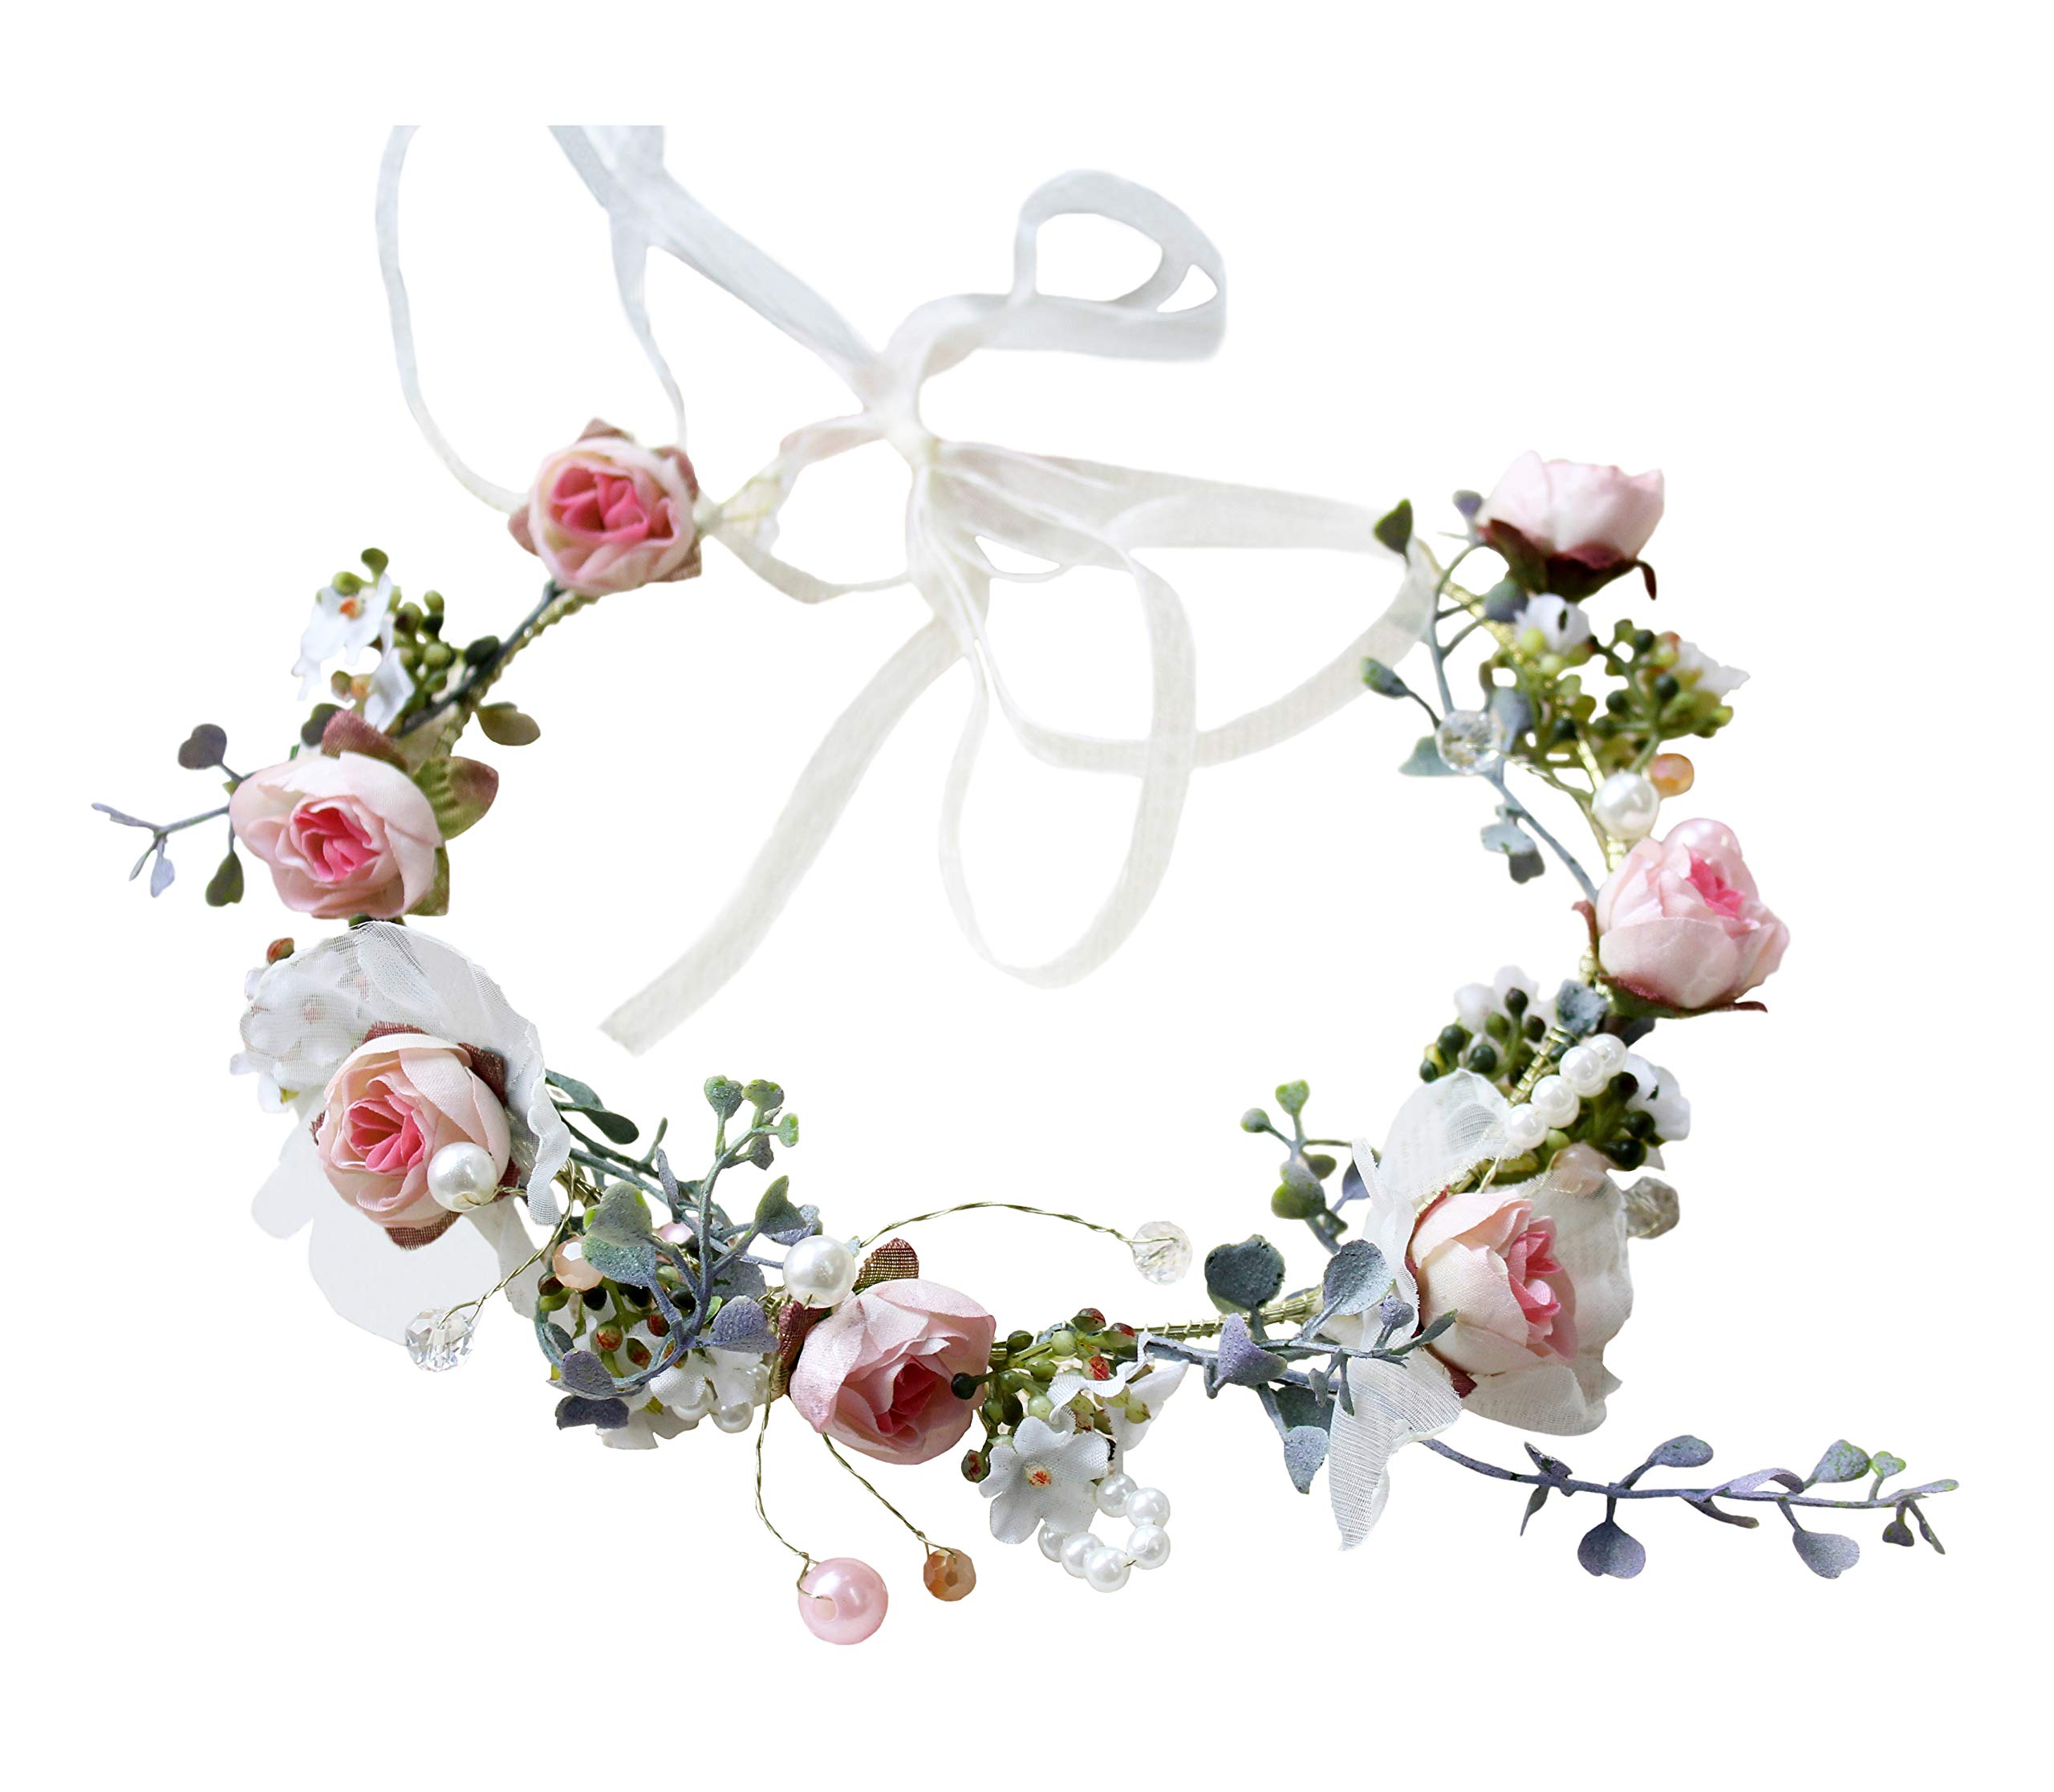 Pearl Flower Crown Floral Garland Headband Flower Halo Headpiece Hair Wreath Boho with Ribbon Wedding Party Festival Photos Pink by Vivivalue by Vivivalue